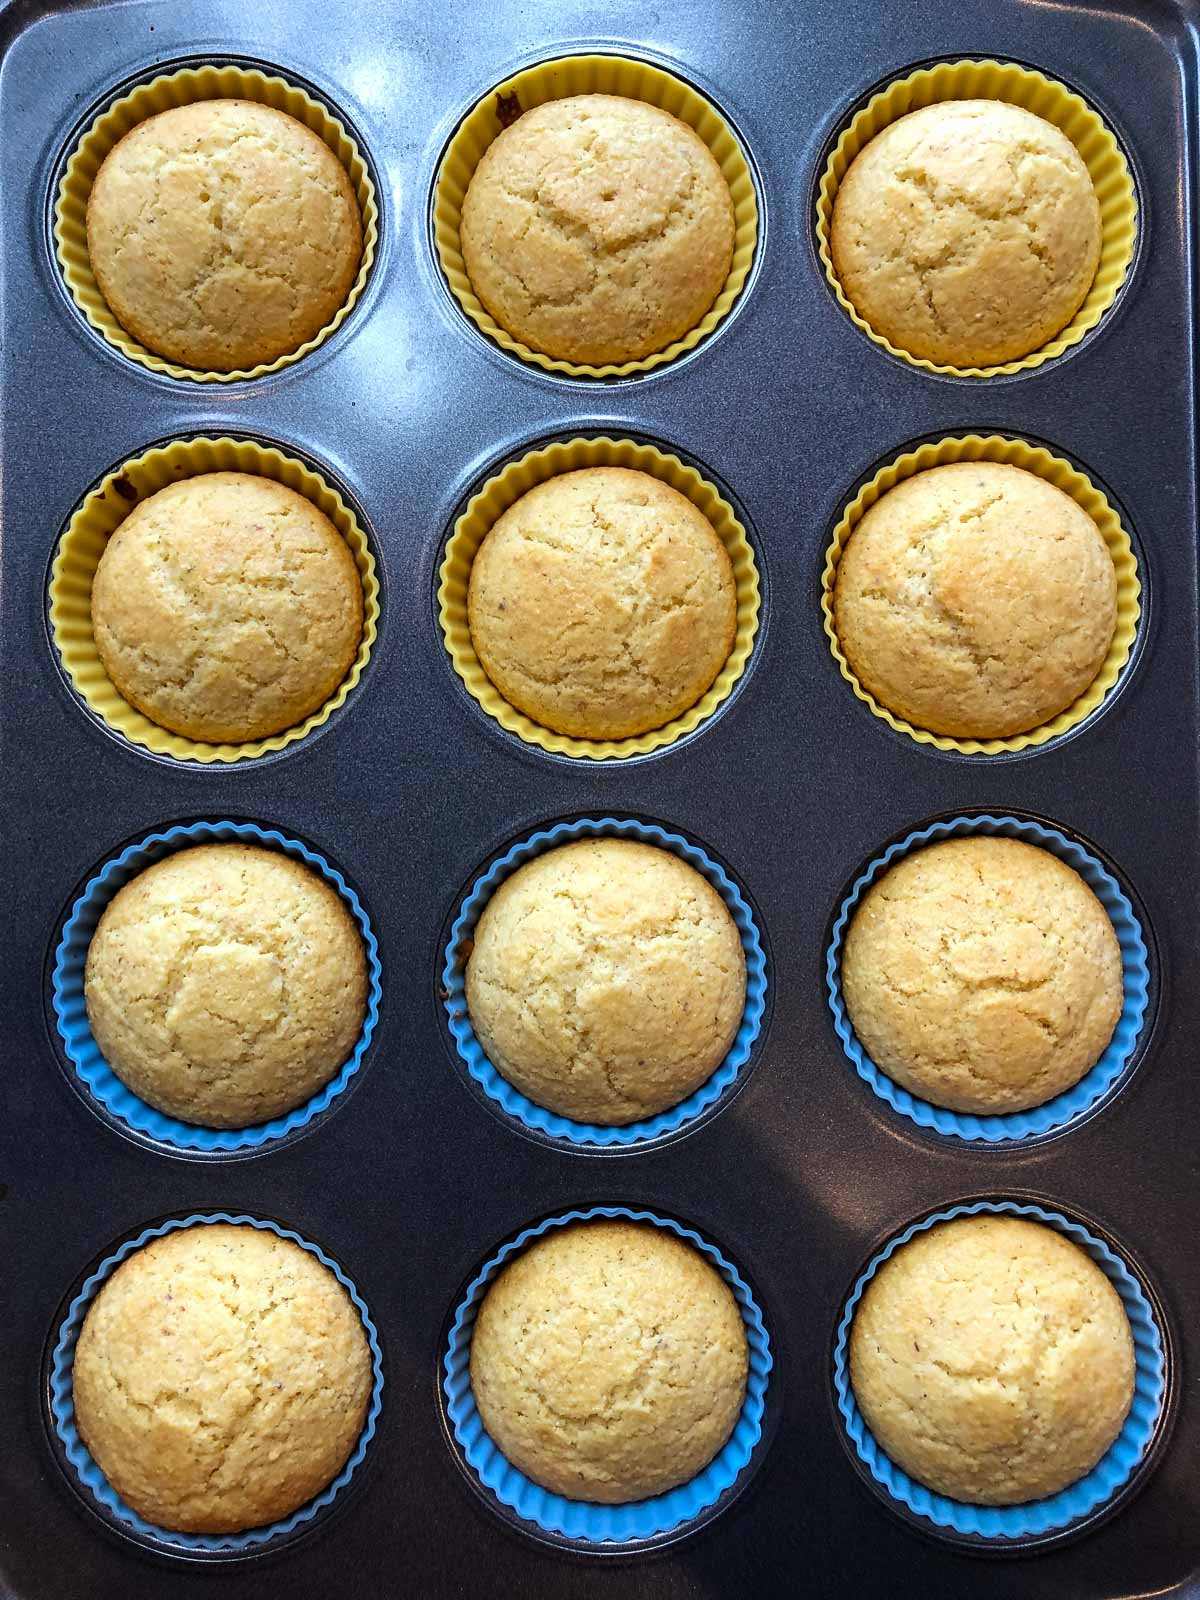 baked cornbread muffins in silicone baking cups and muffin pan